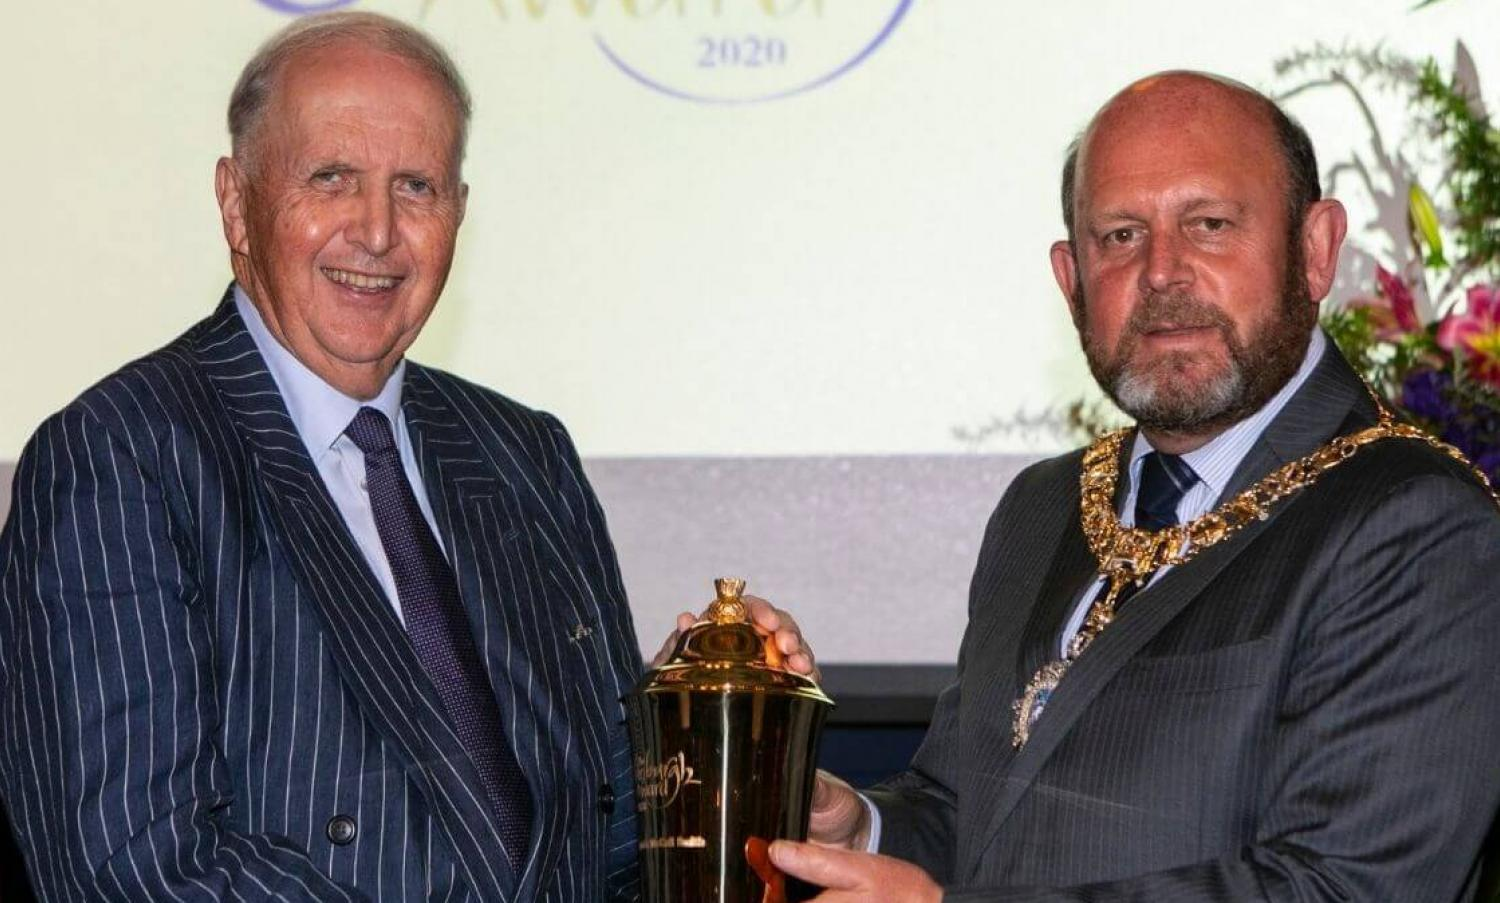 Alexander McCall Smith holding the Edinburgh Award Loving Cup with Lord Provost Frank Ross